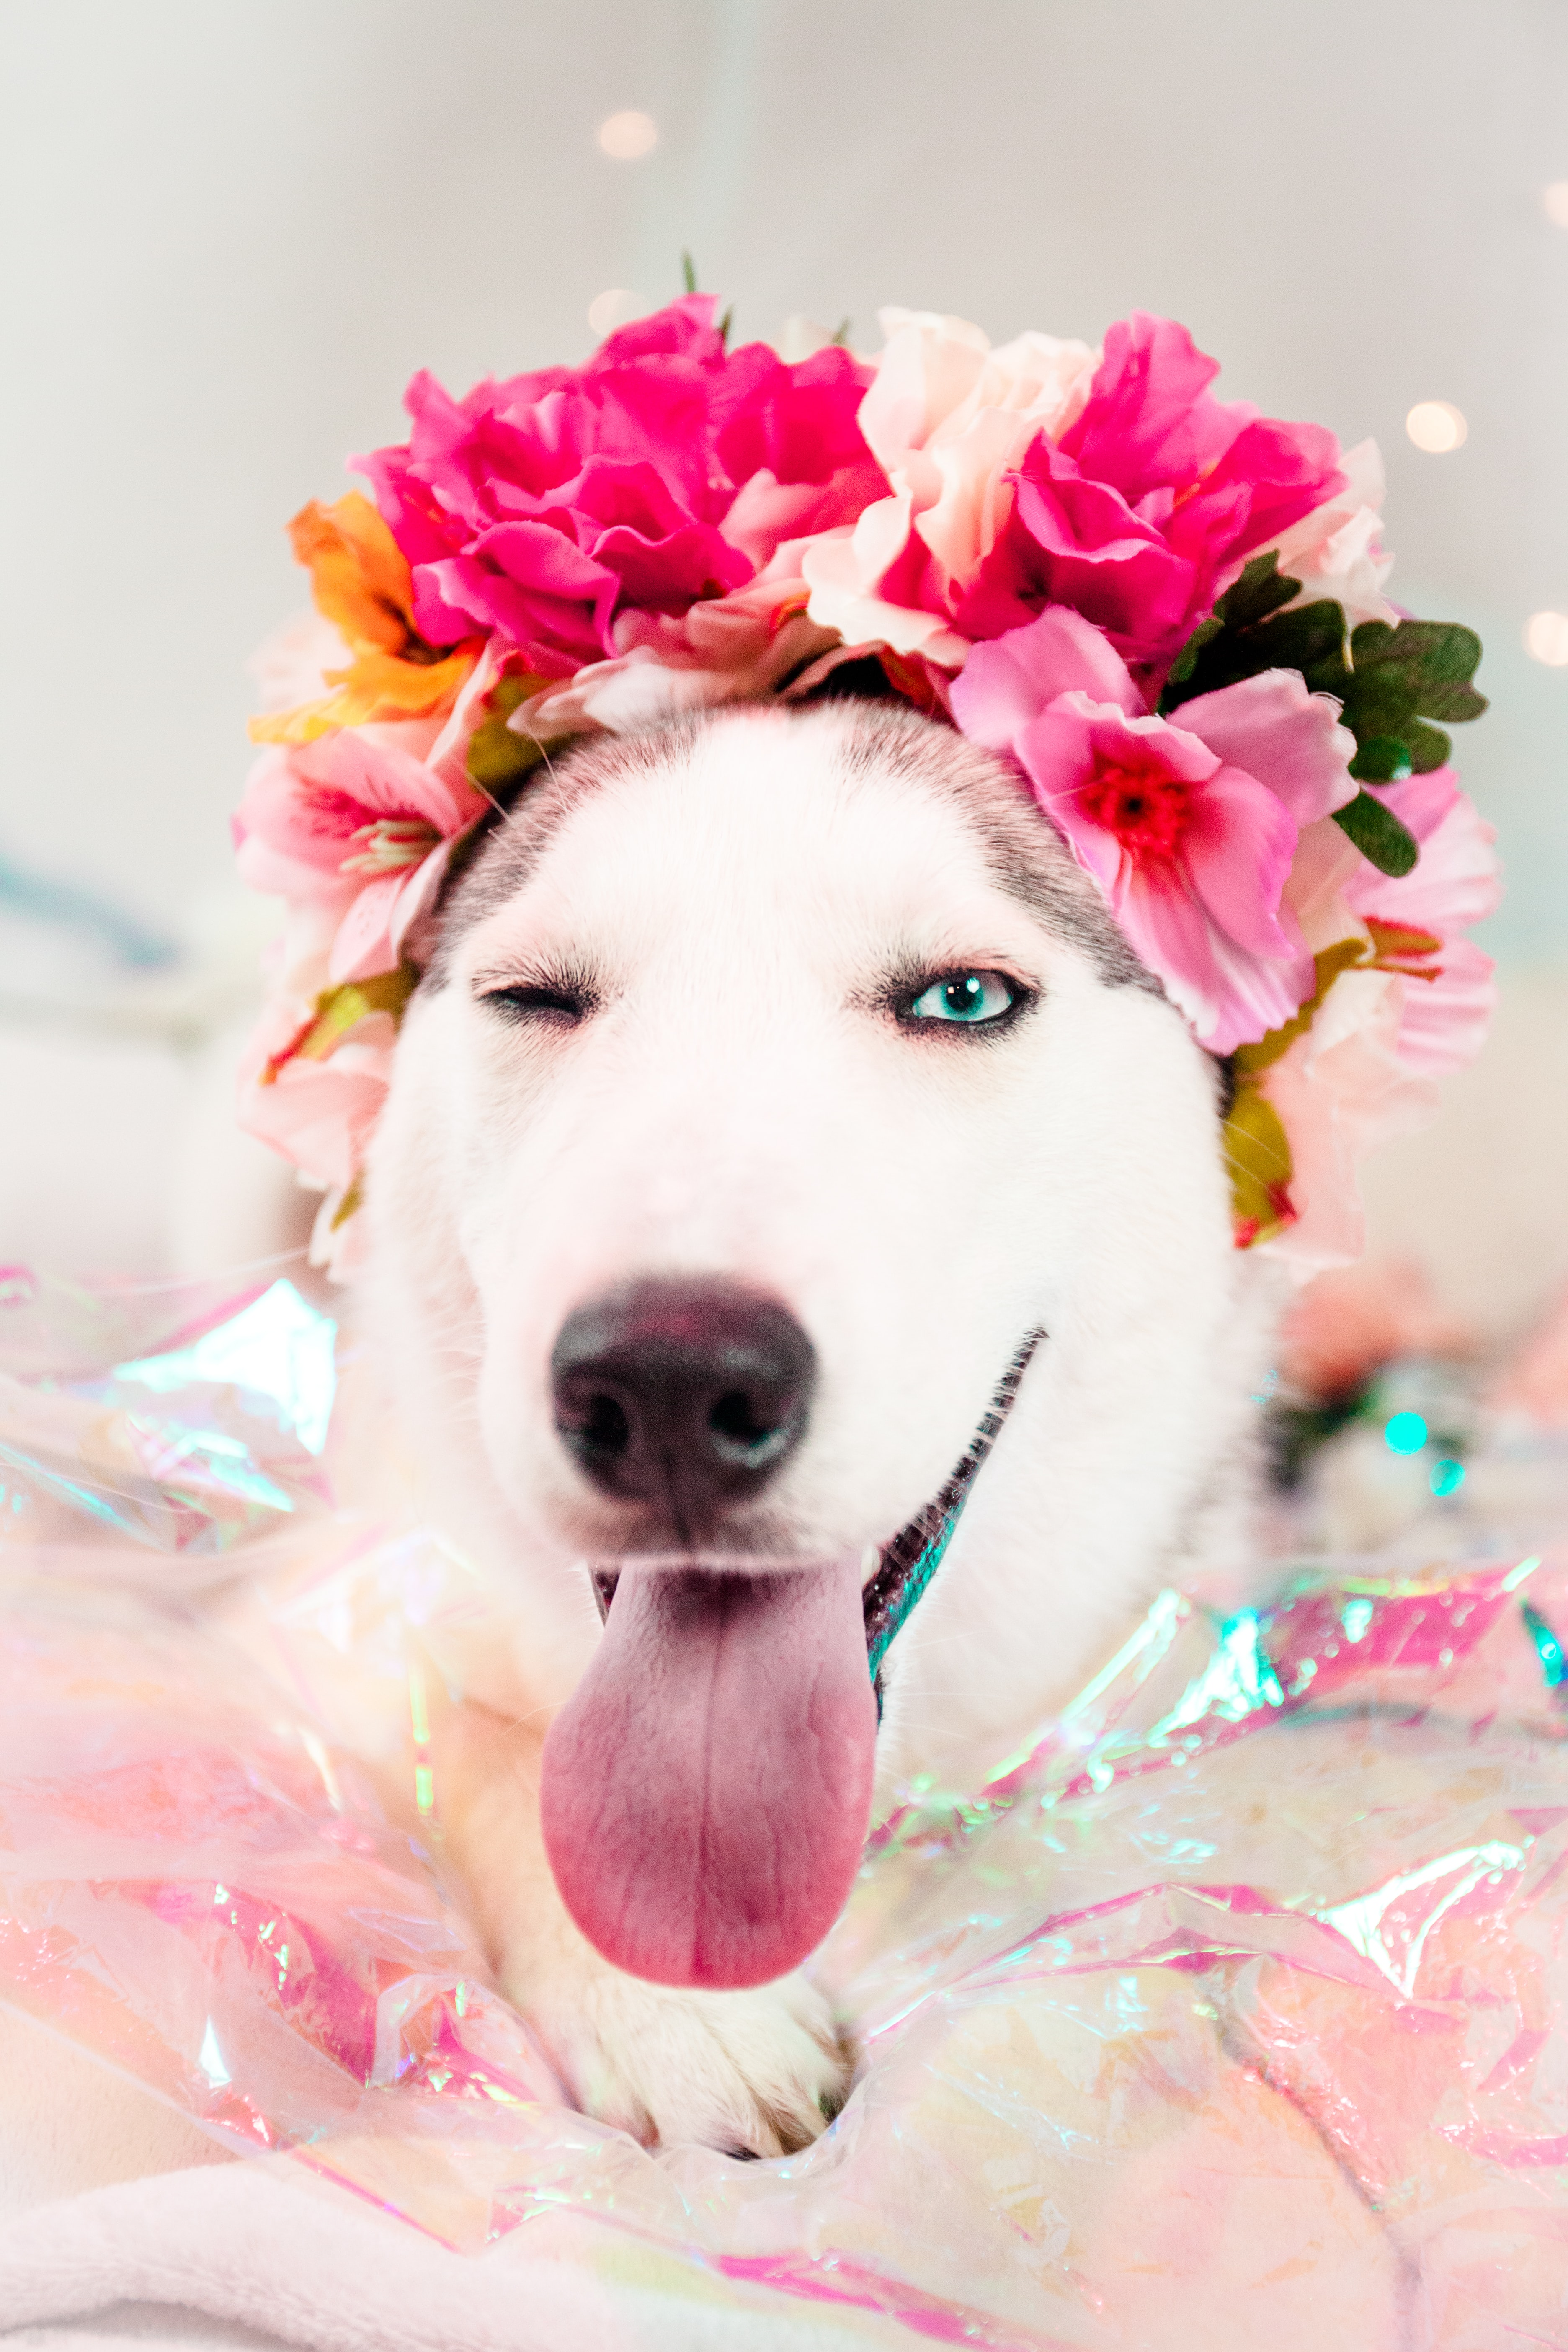 white and gray Siberian husky with floral headdress lying on bed